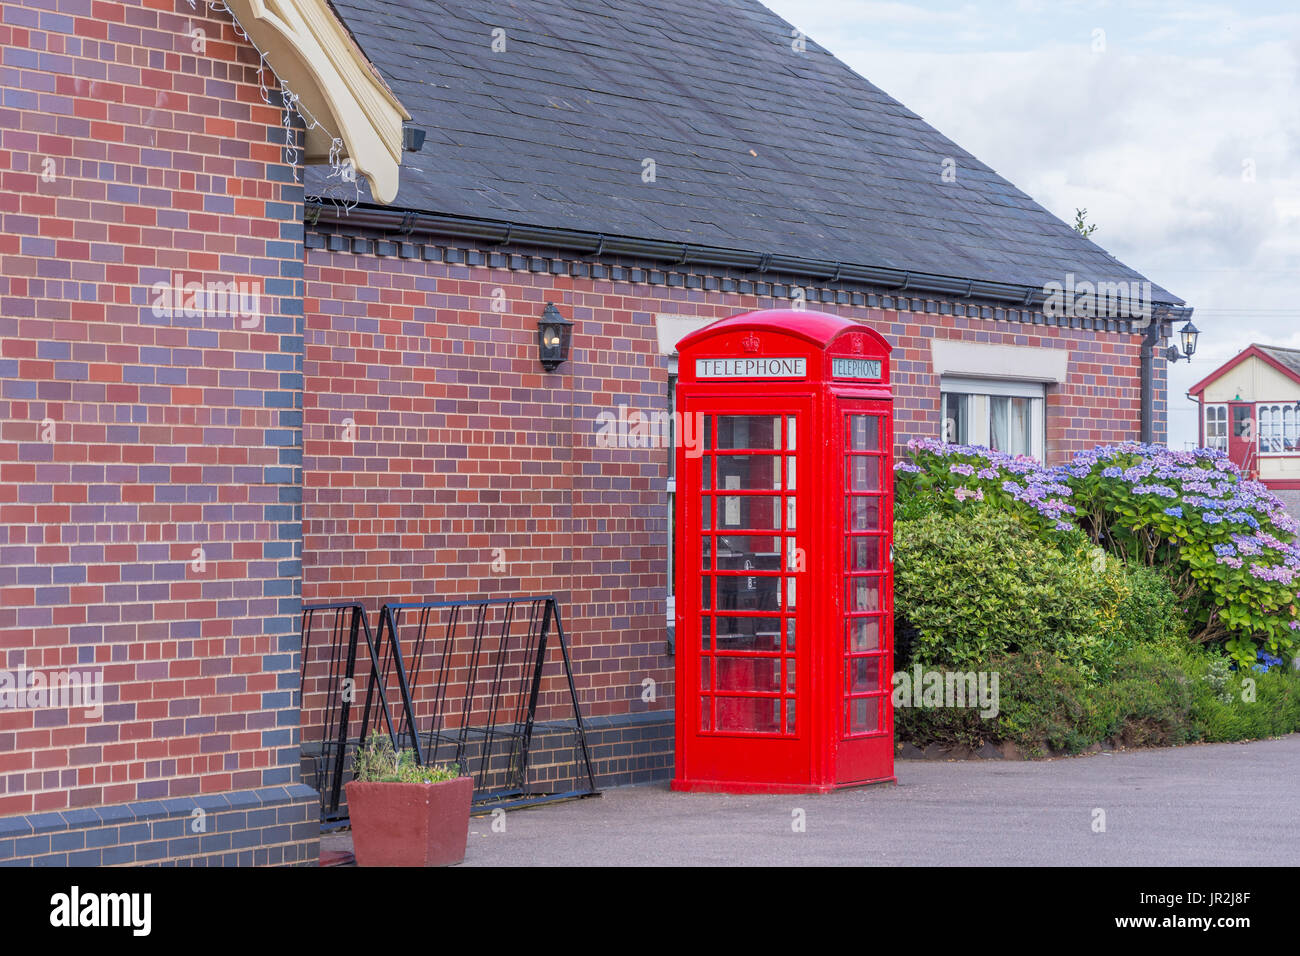 vintage style red telephone box - Stock Image